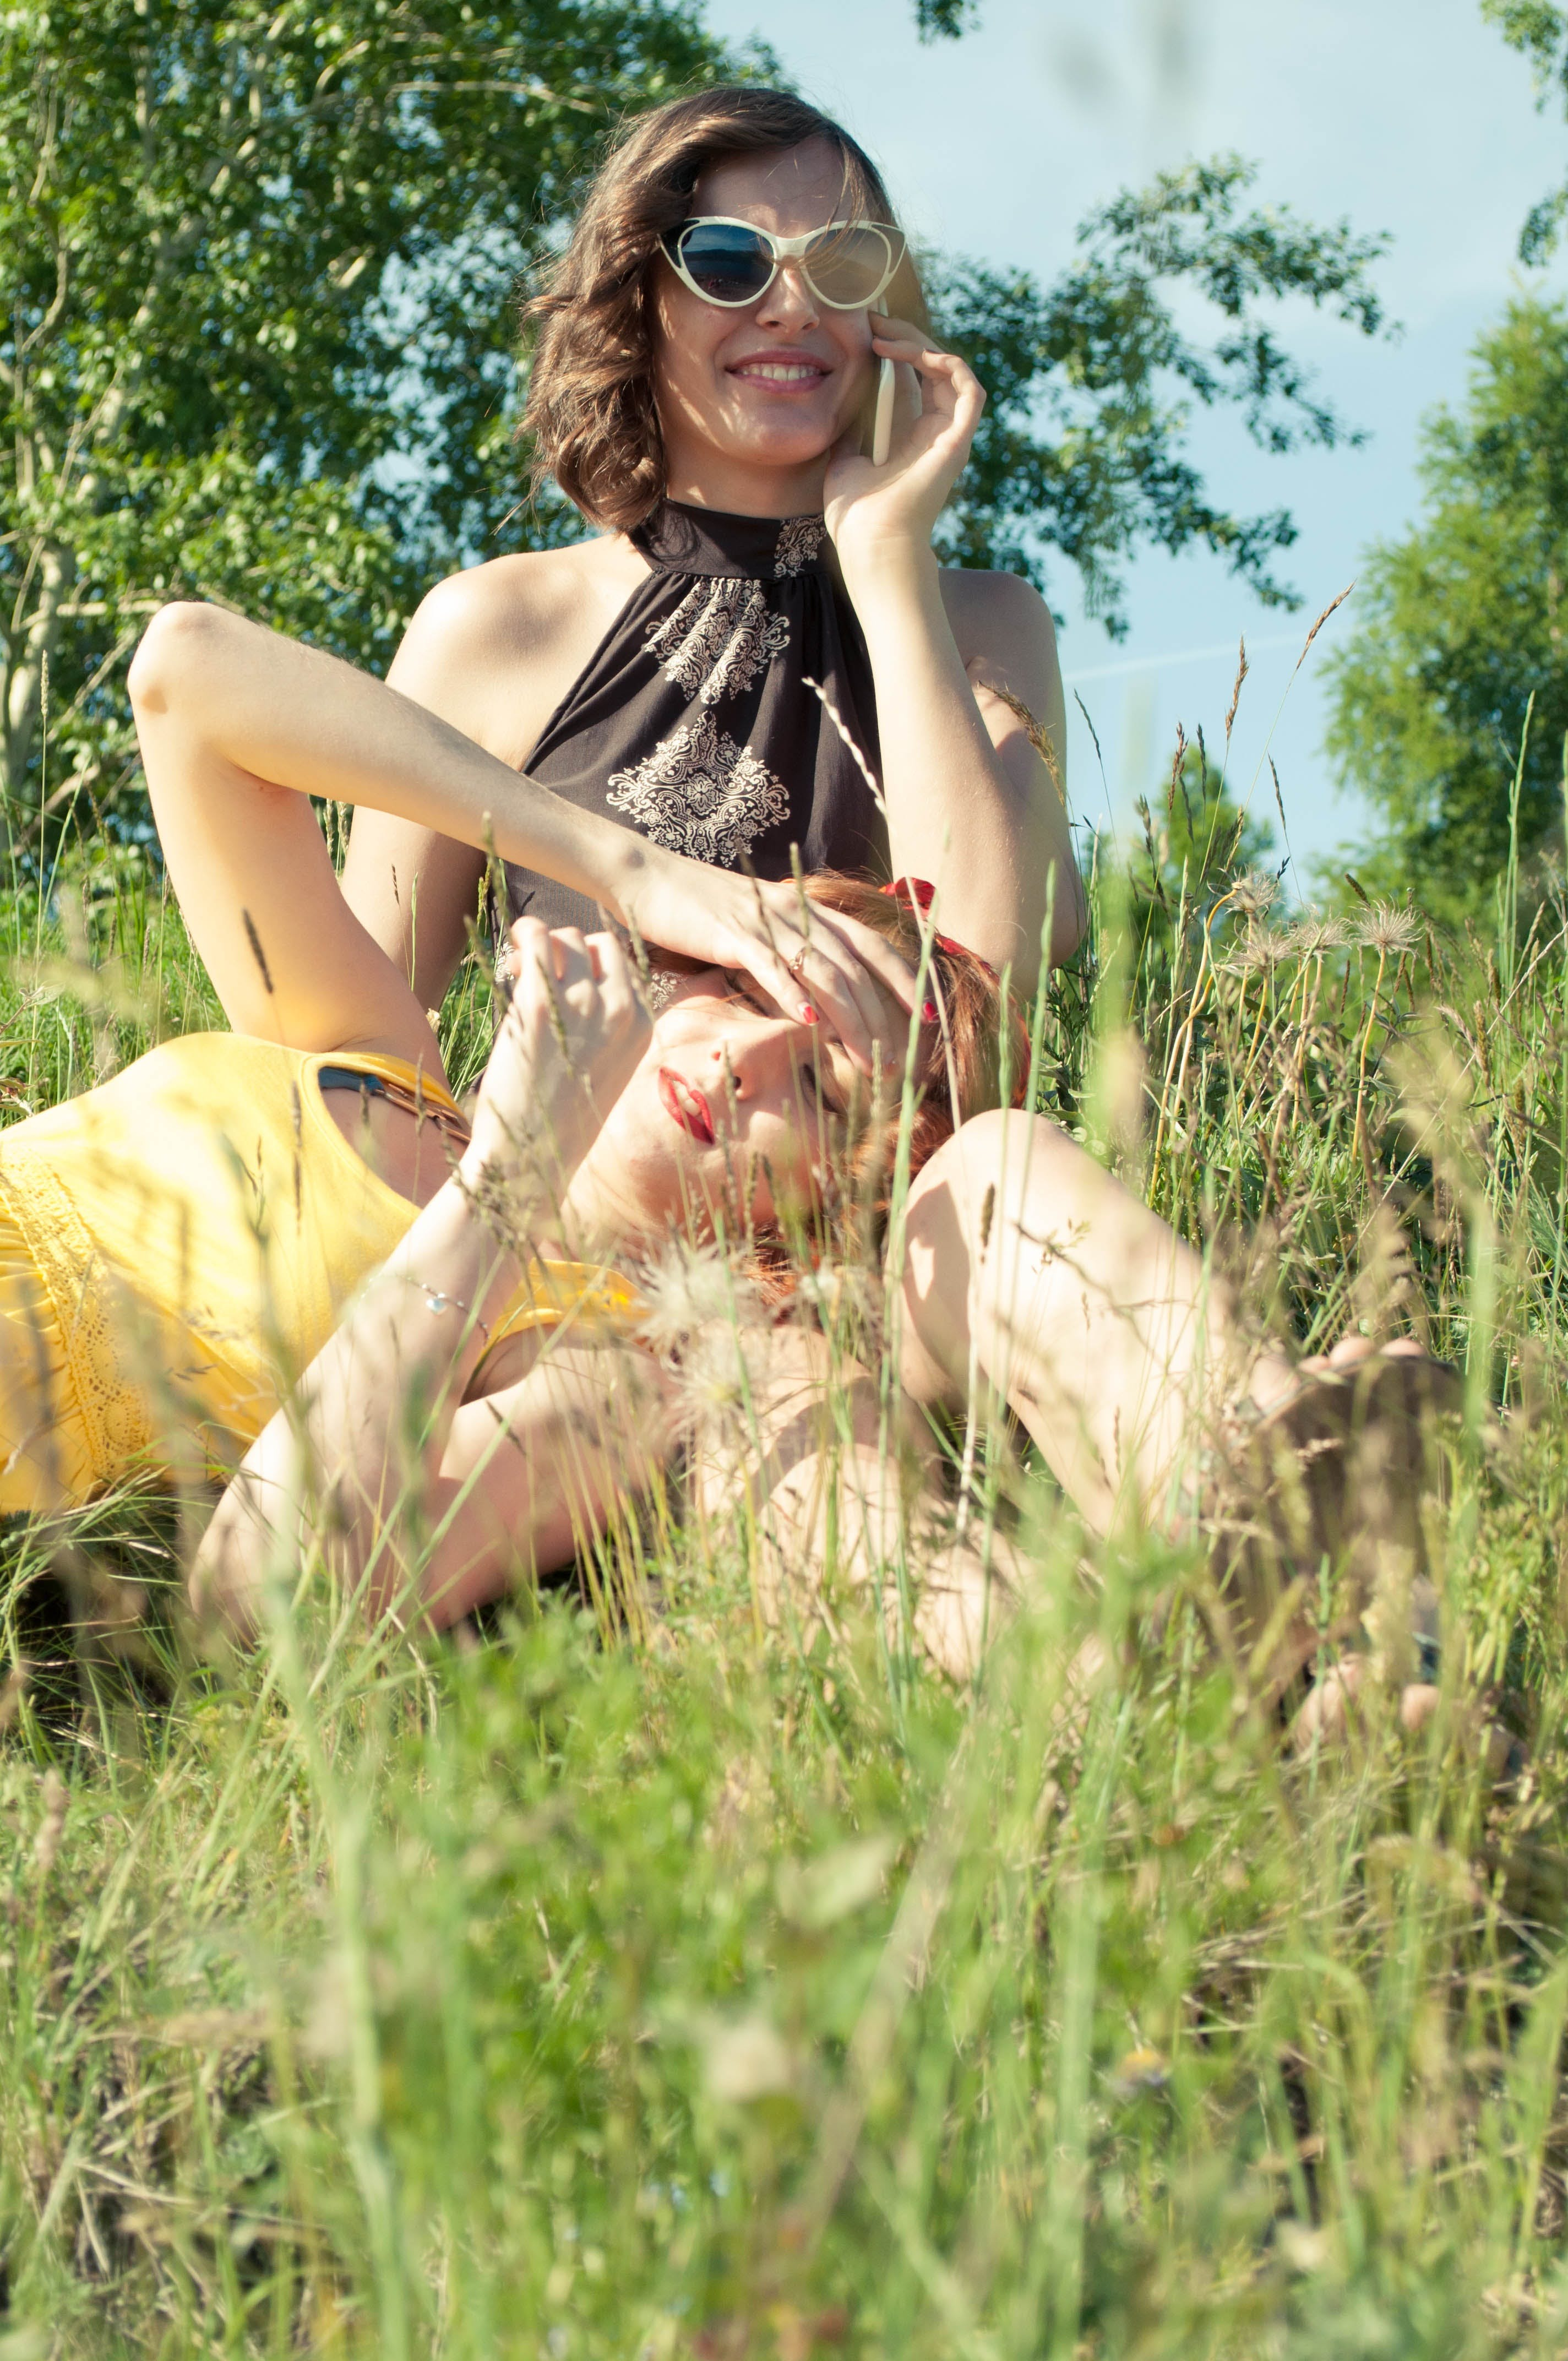 Two Woman on Green Grass during Day Time